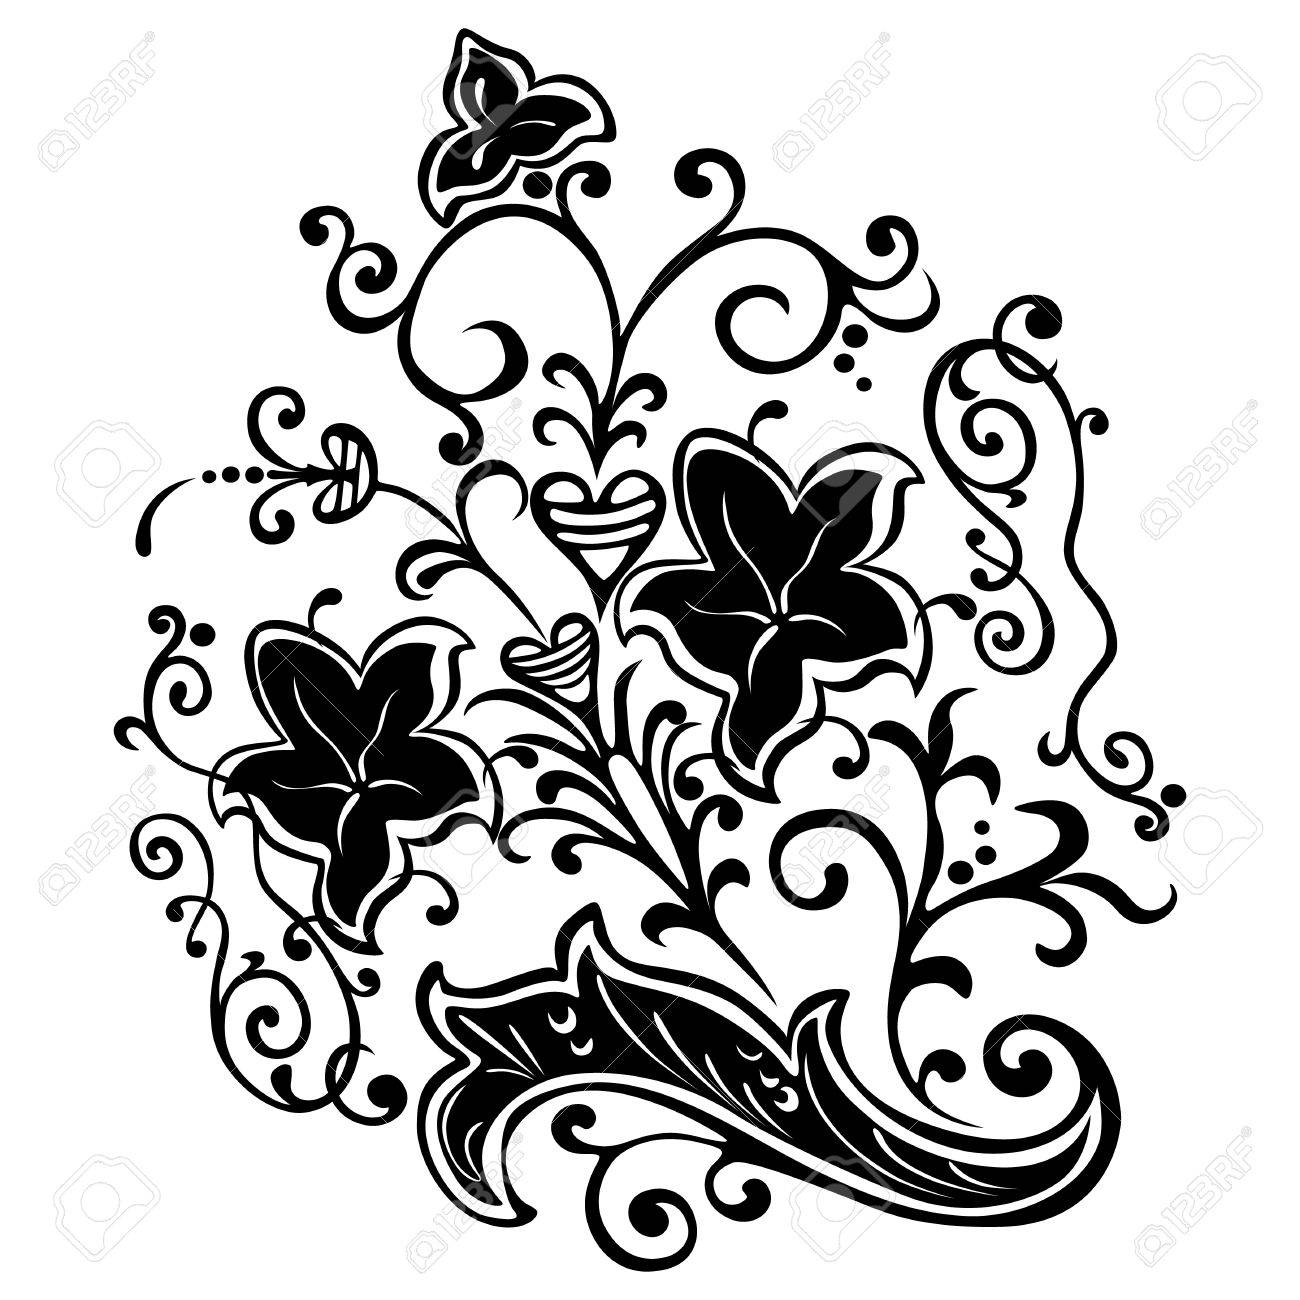 motif, swirling floral decorative elements Stock Vector - 17910498